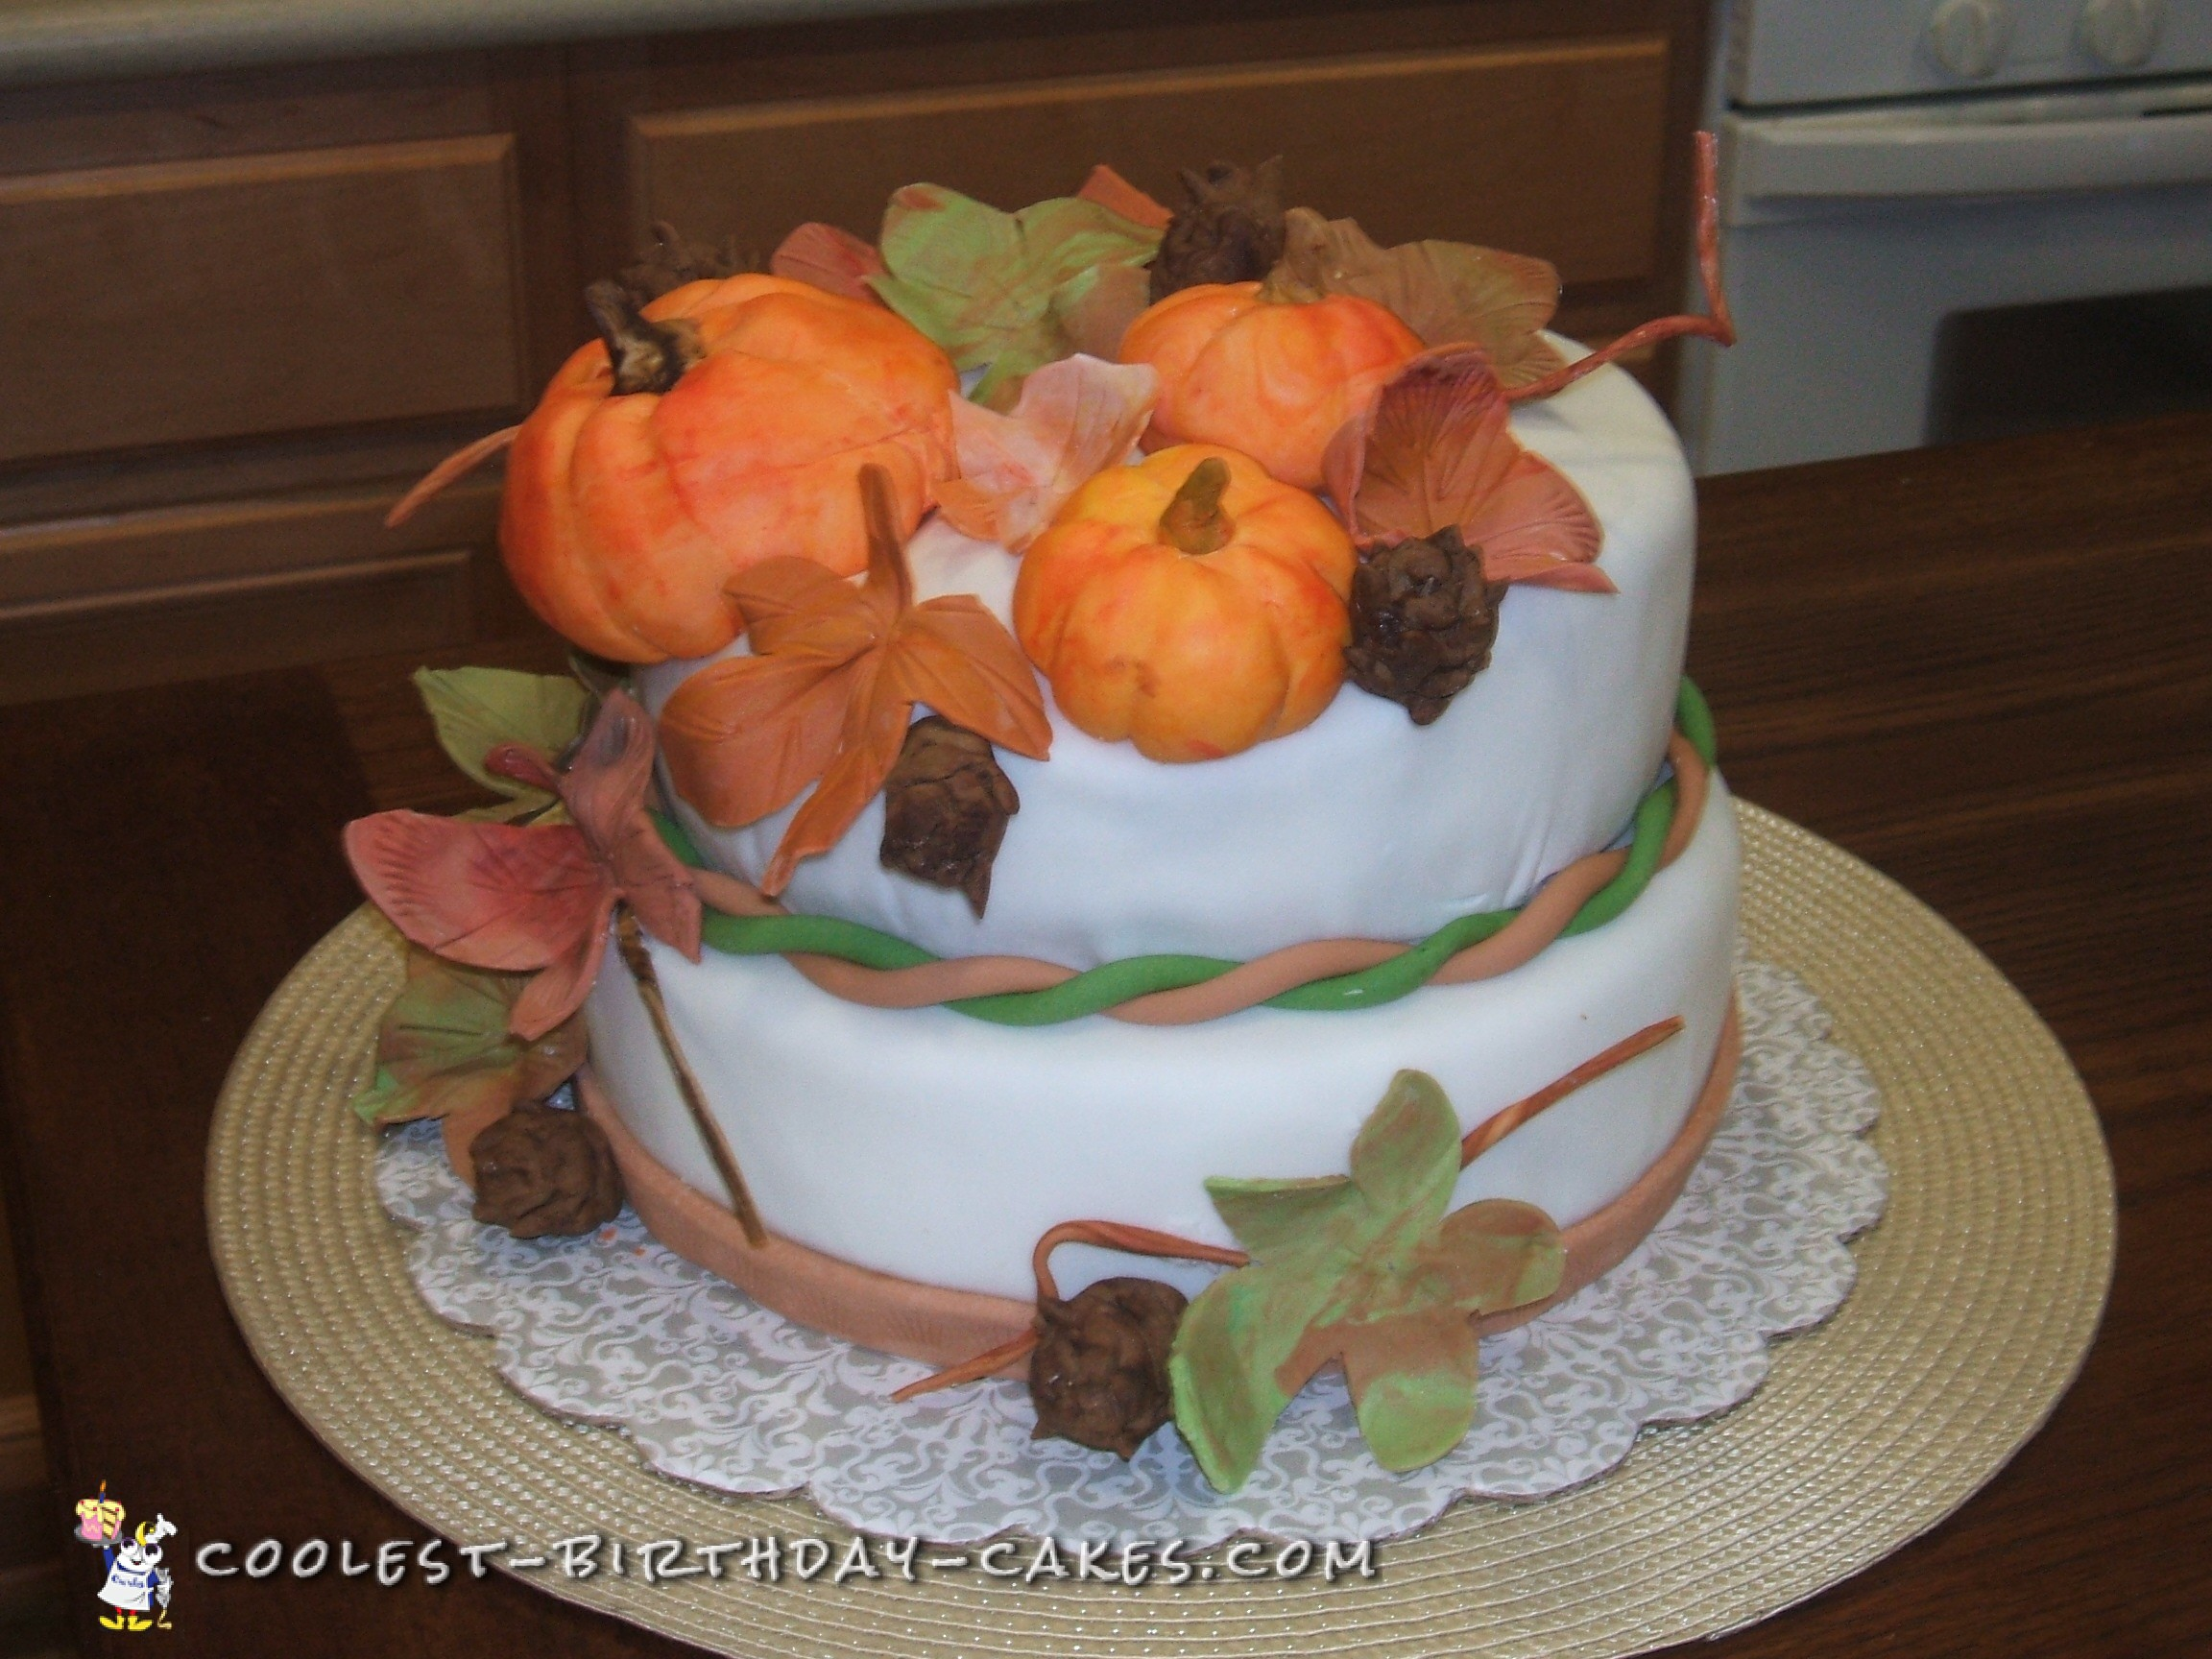 Harvest Cake for Thanksgiving